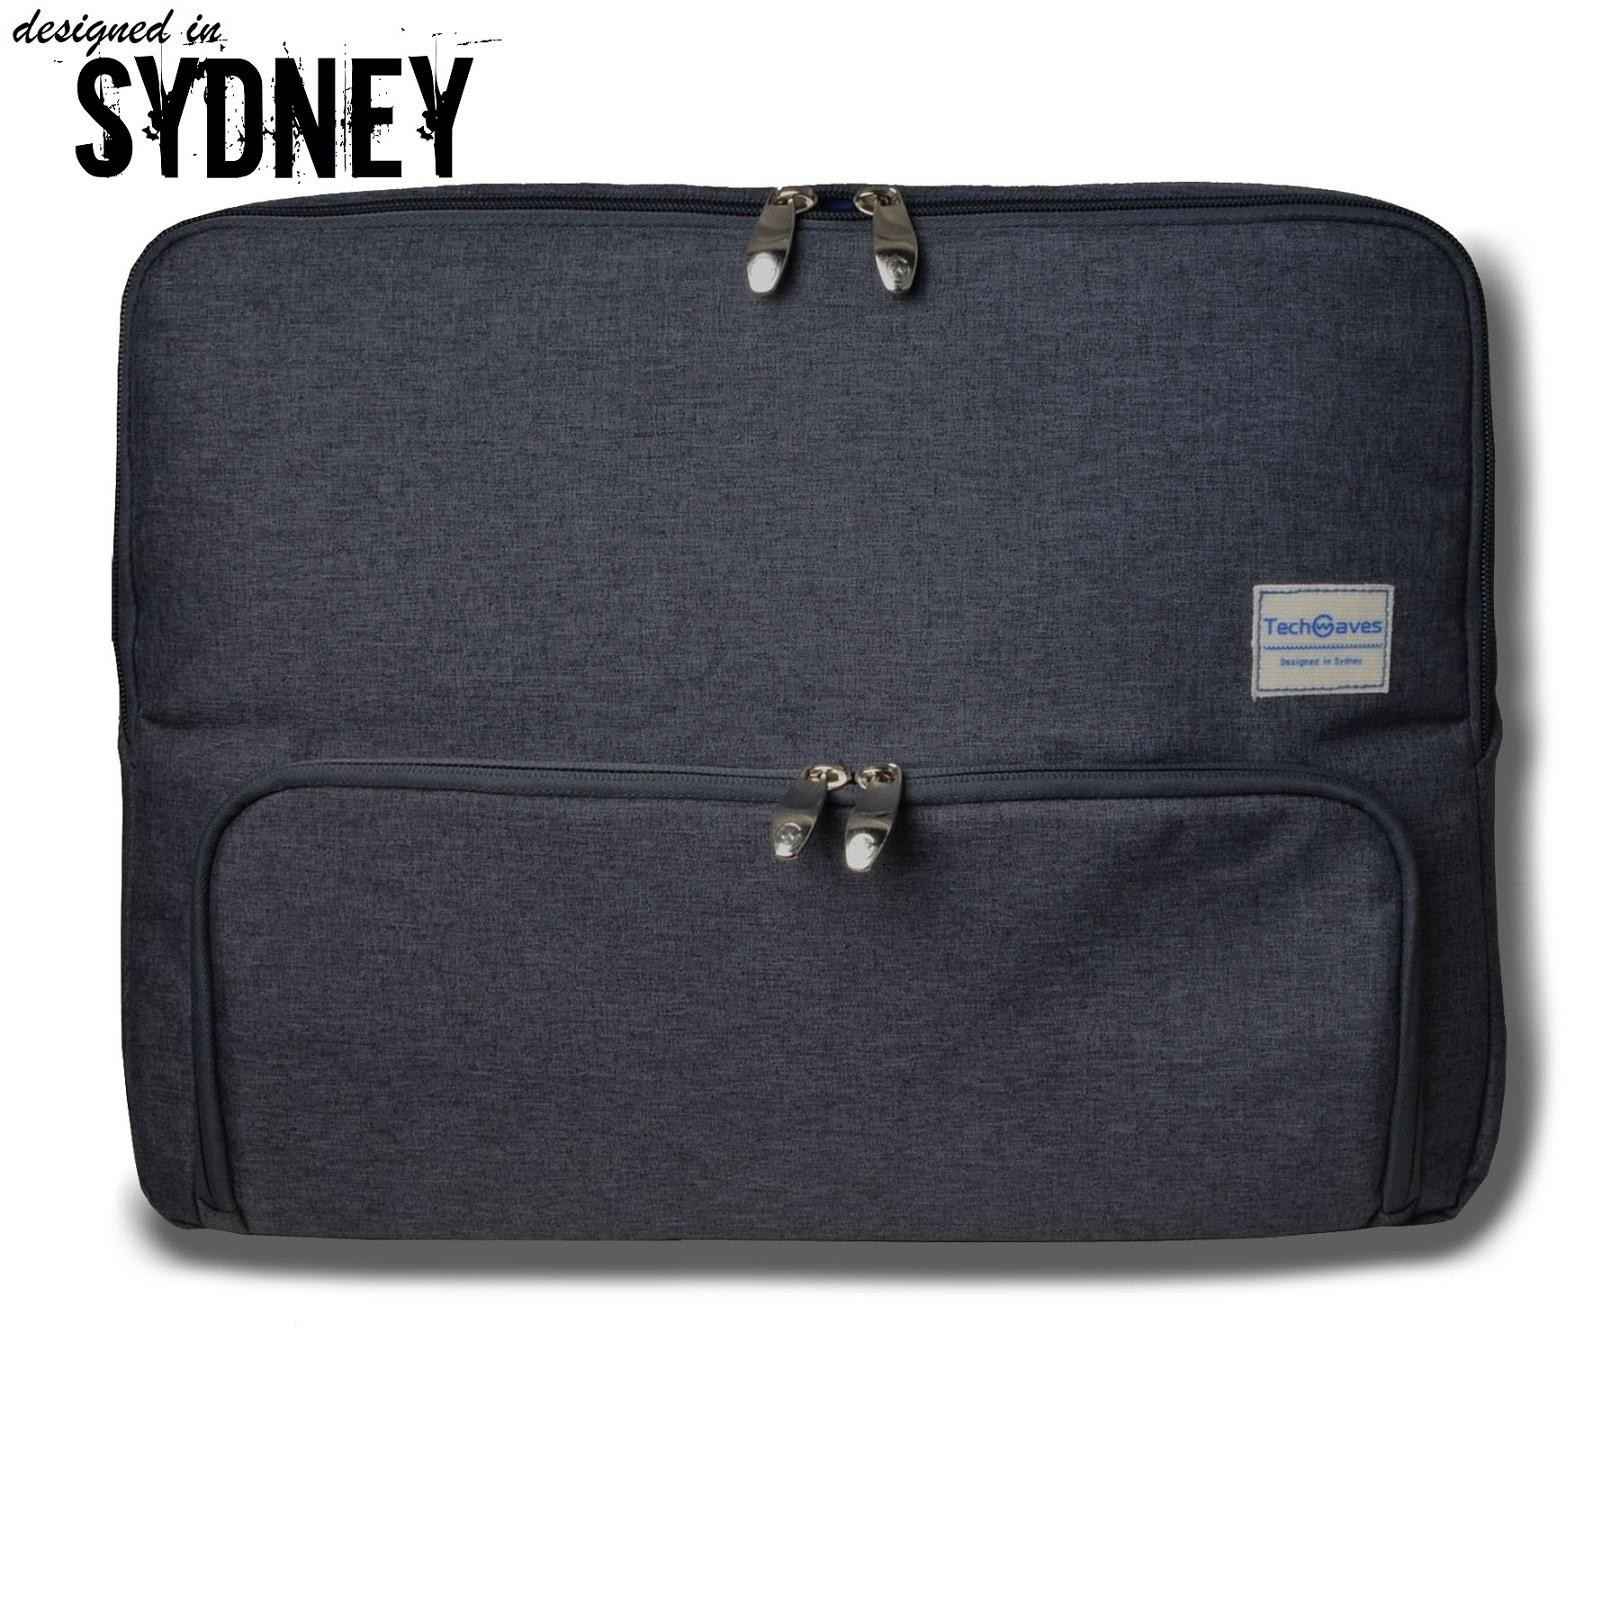 Messenger Bags for Men for sale - Shoulder Bags for Men online ... 68674edf5c738